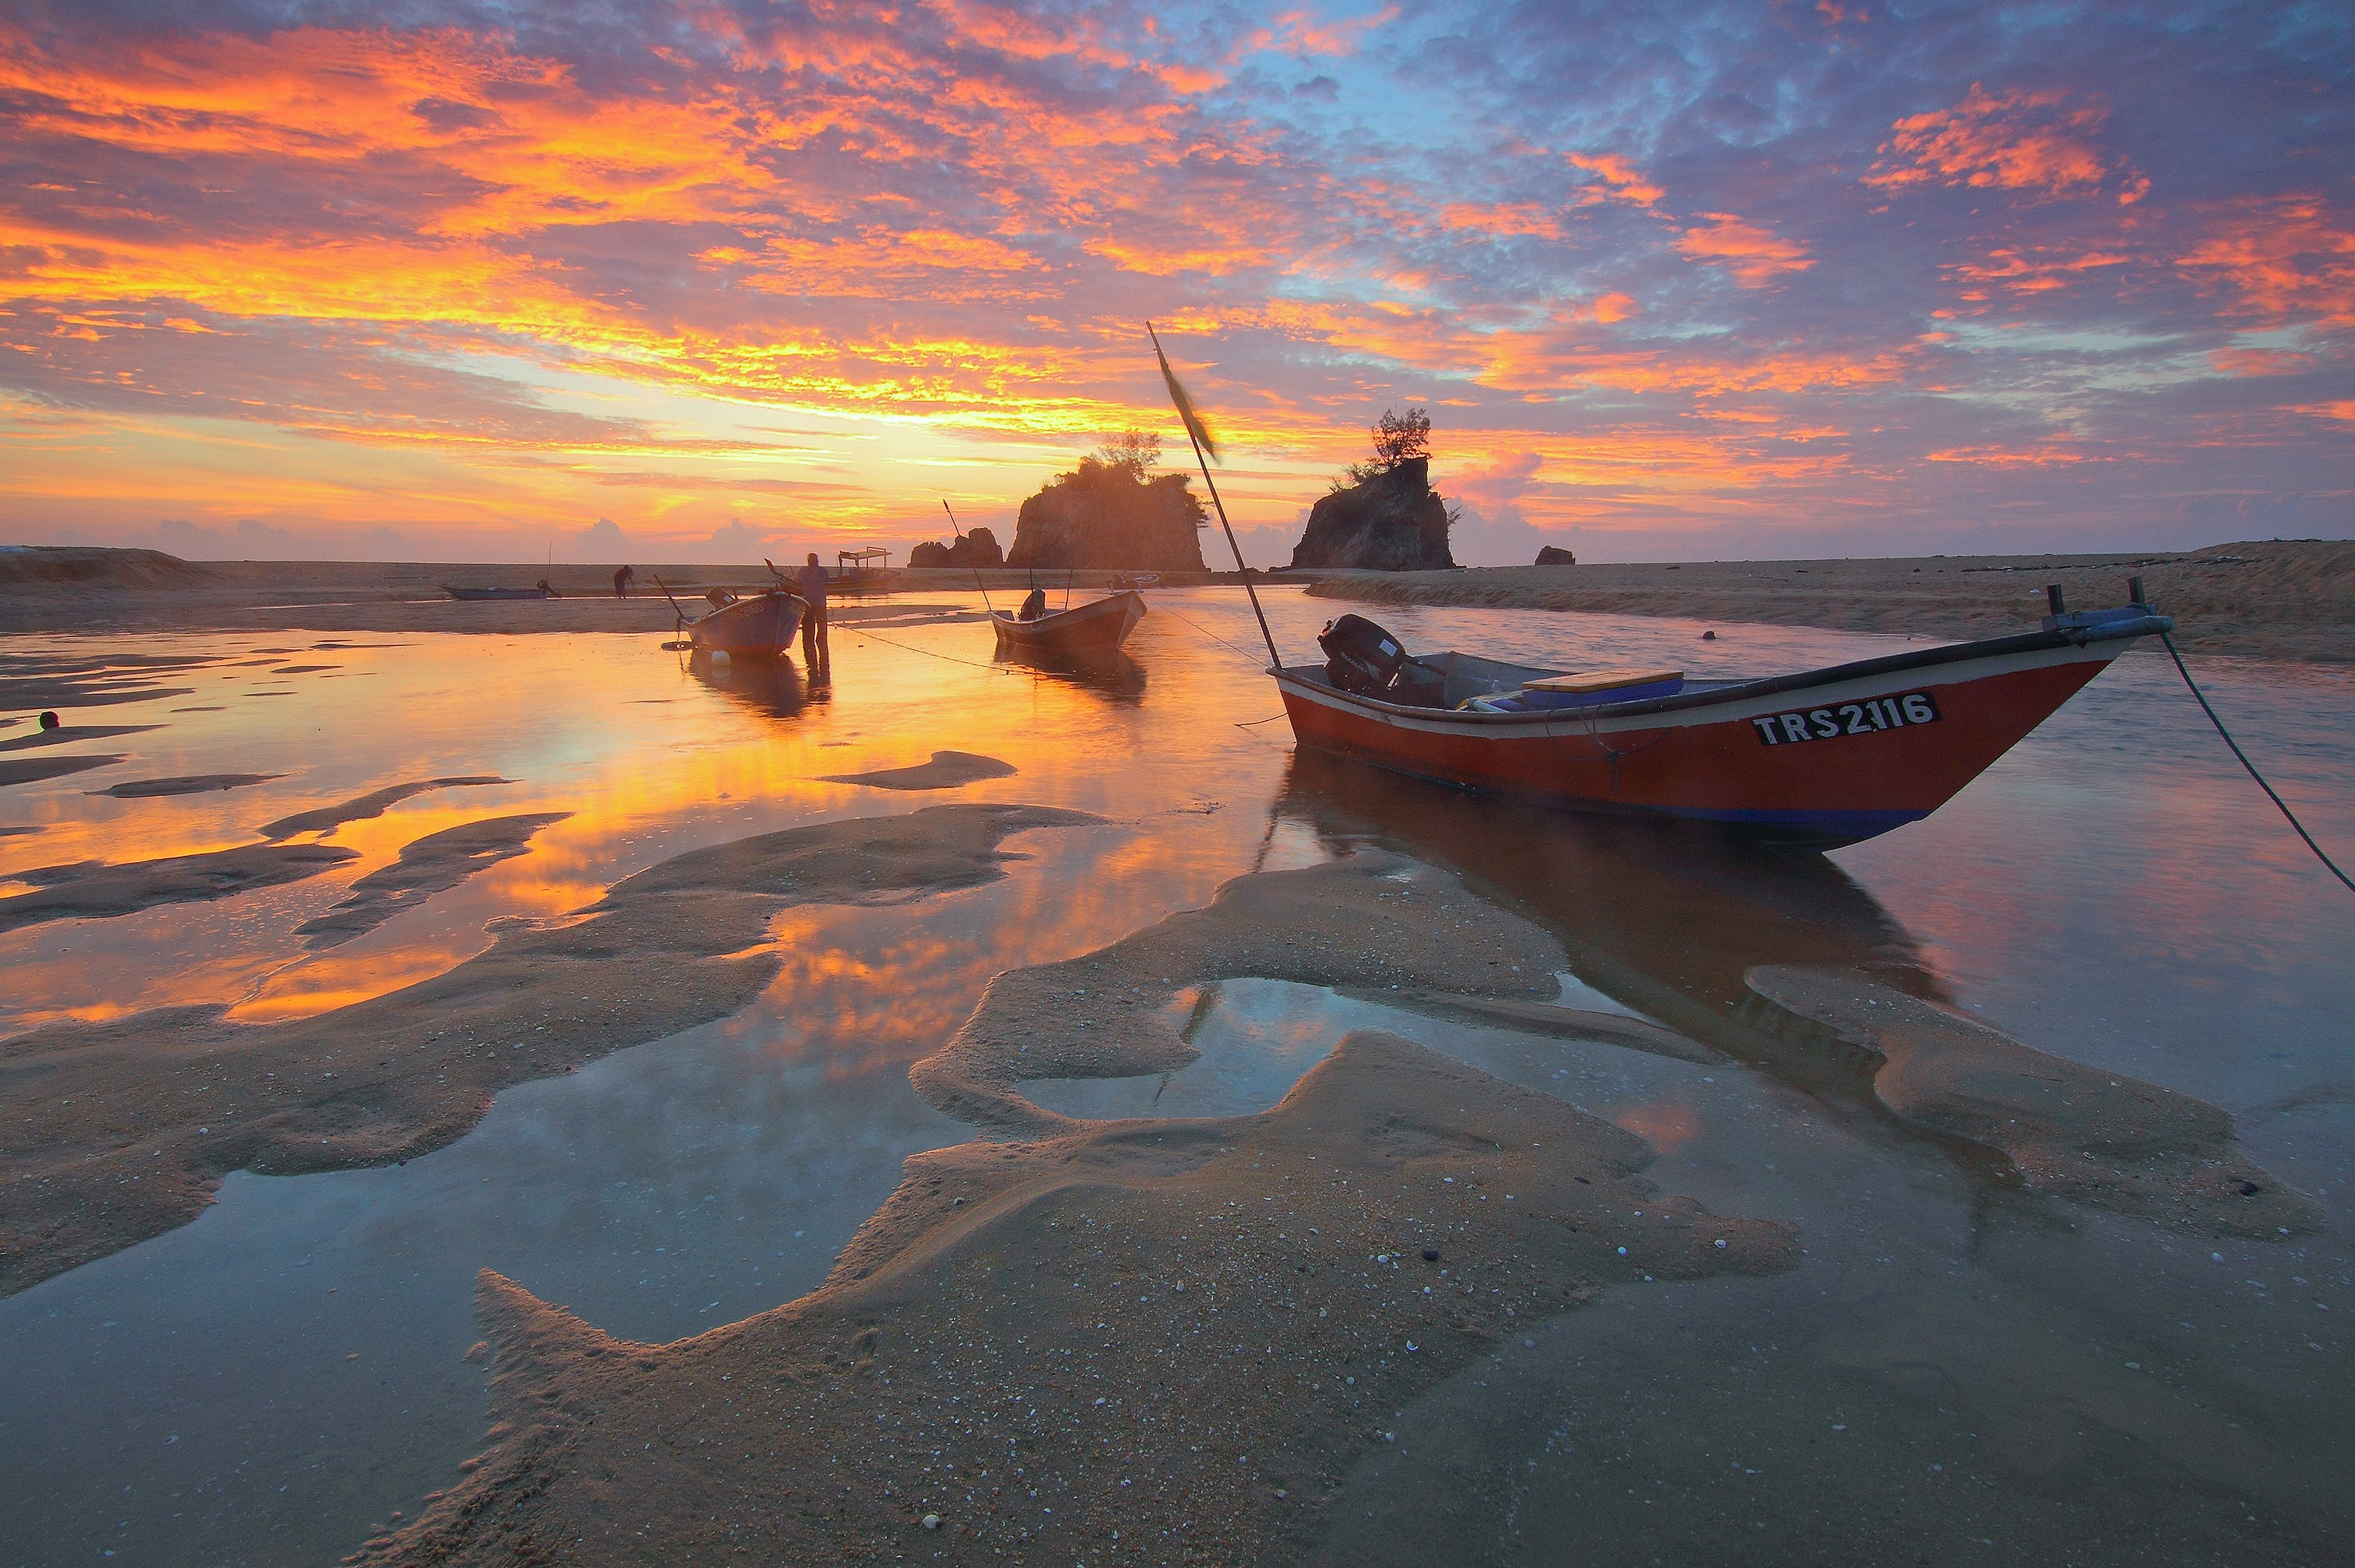 Low Tide during Sunset